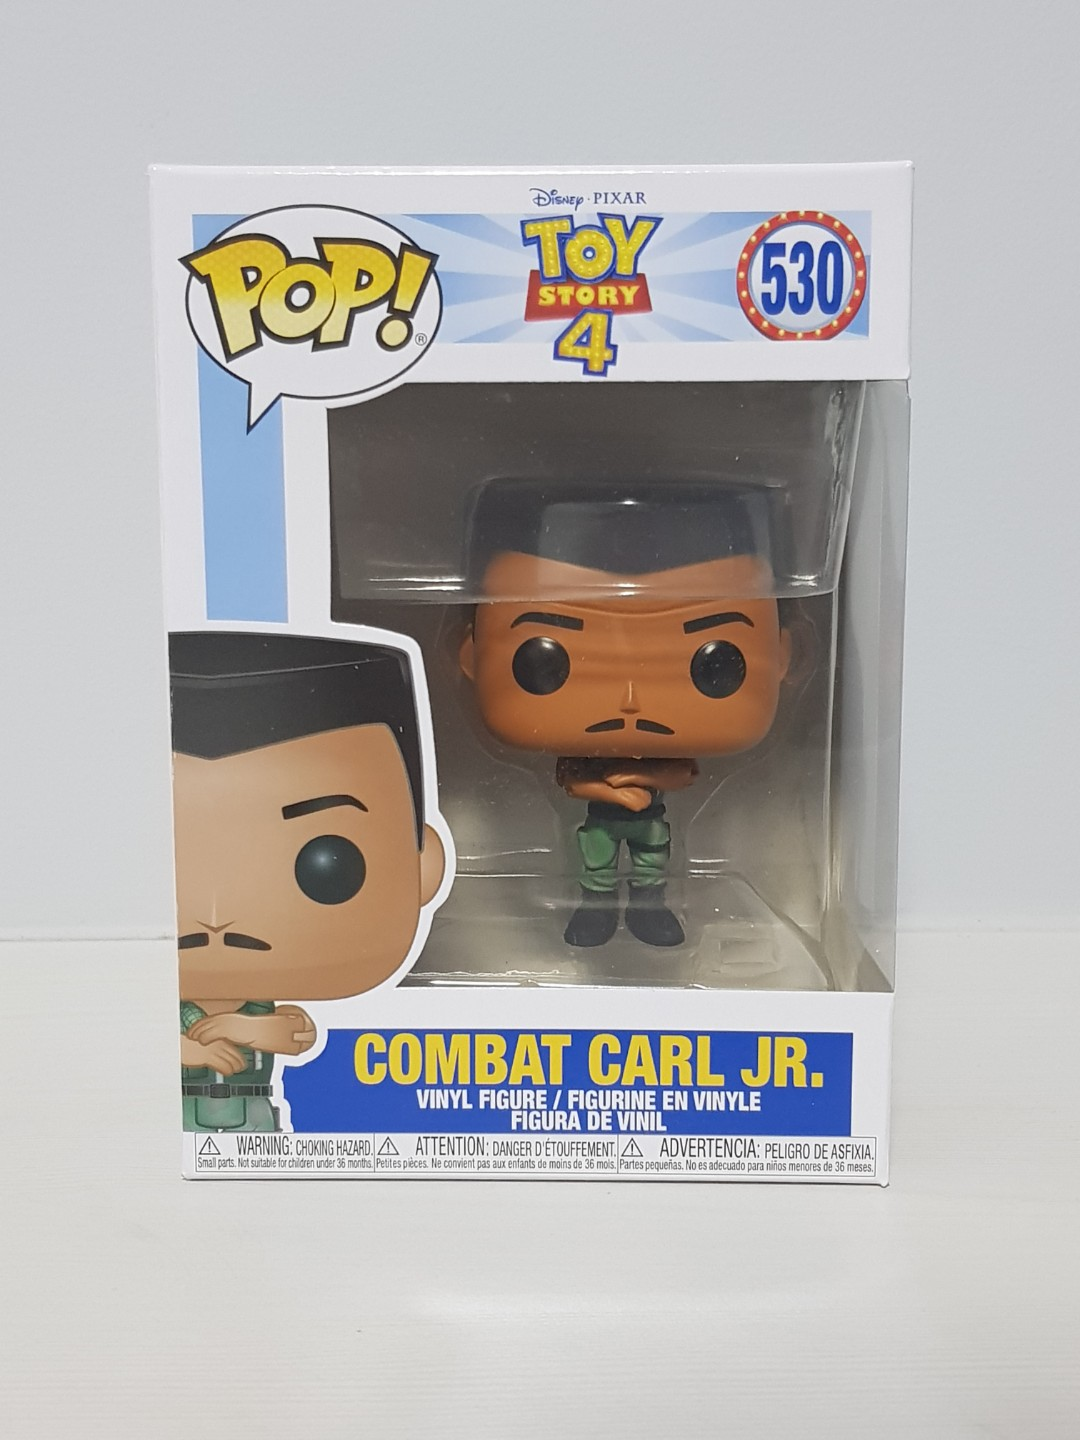 Toy Story 4 Funko Pop #530 Exclusive Combat Carl Jr